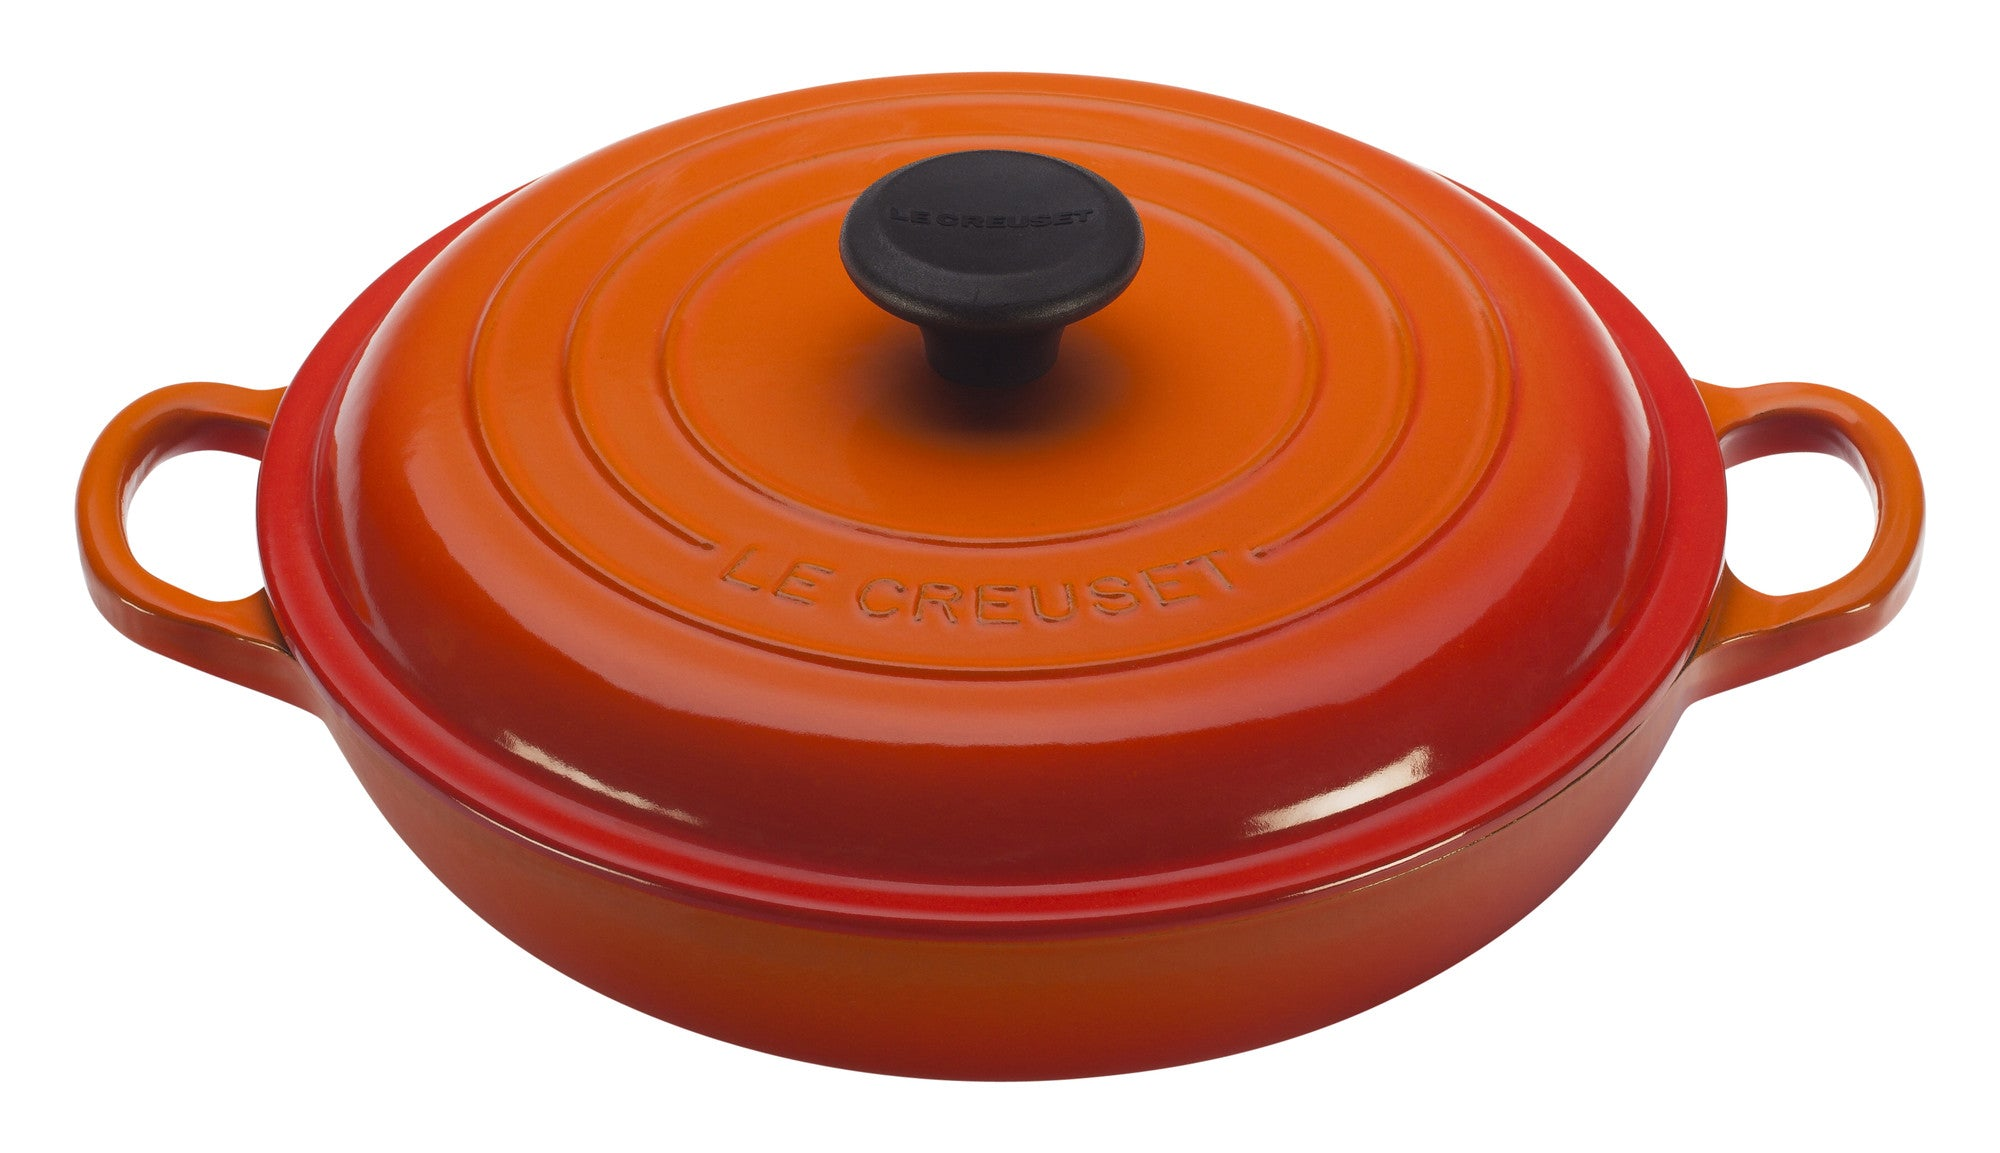 Le Creuset Enamelled Cast Iron Braiser 3.5L Flame